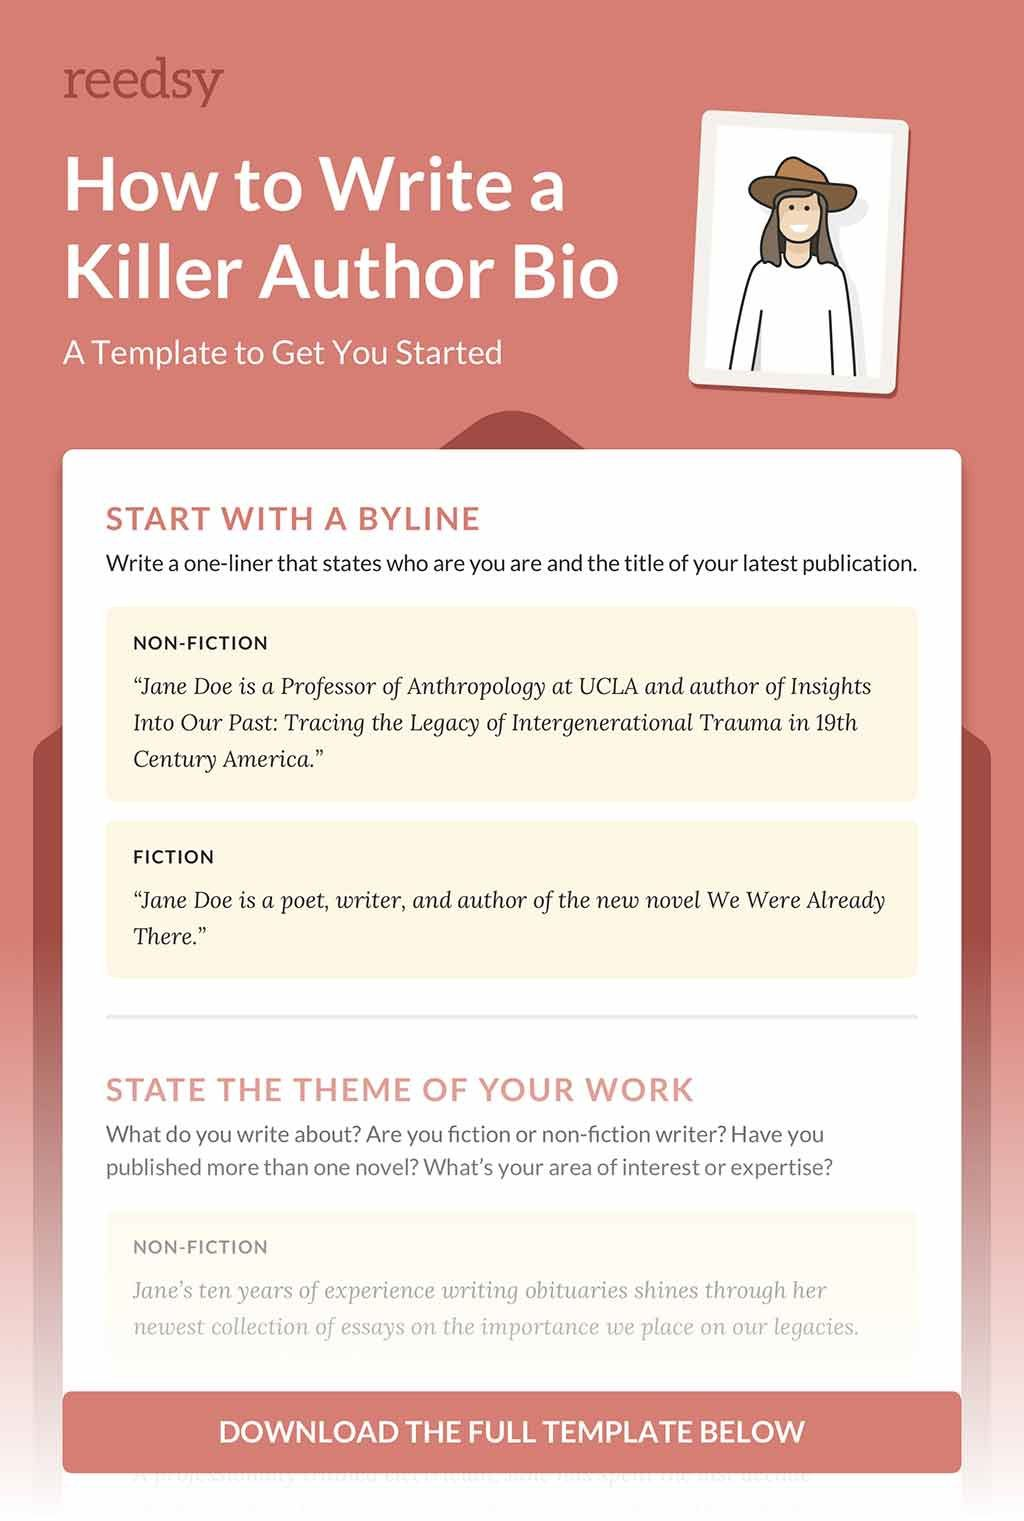 003 Unique About The Author Template Inspiration  Pdf All For StudentFull